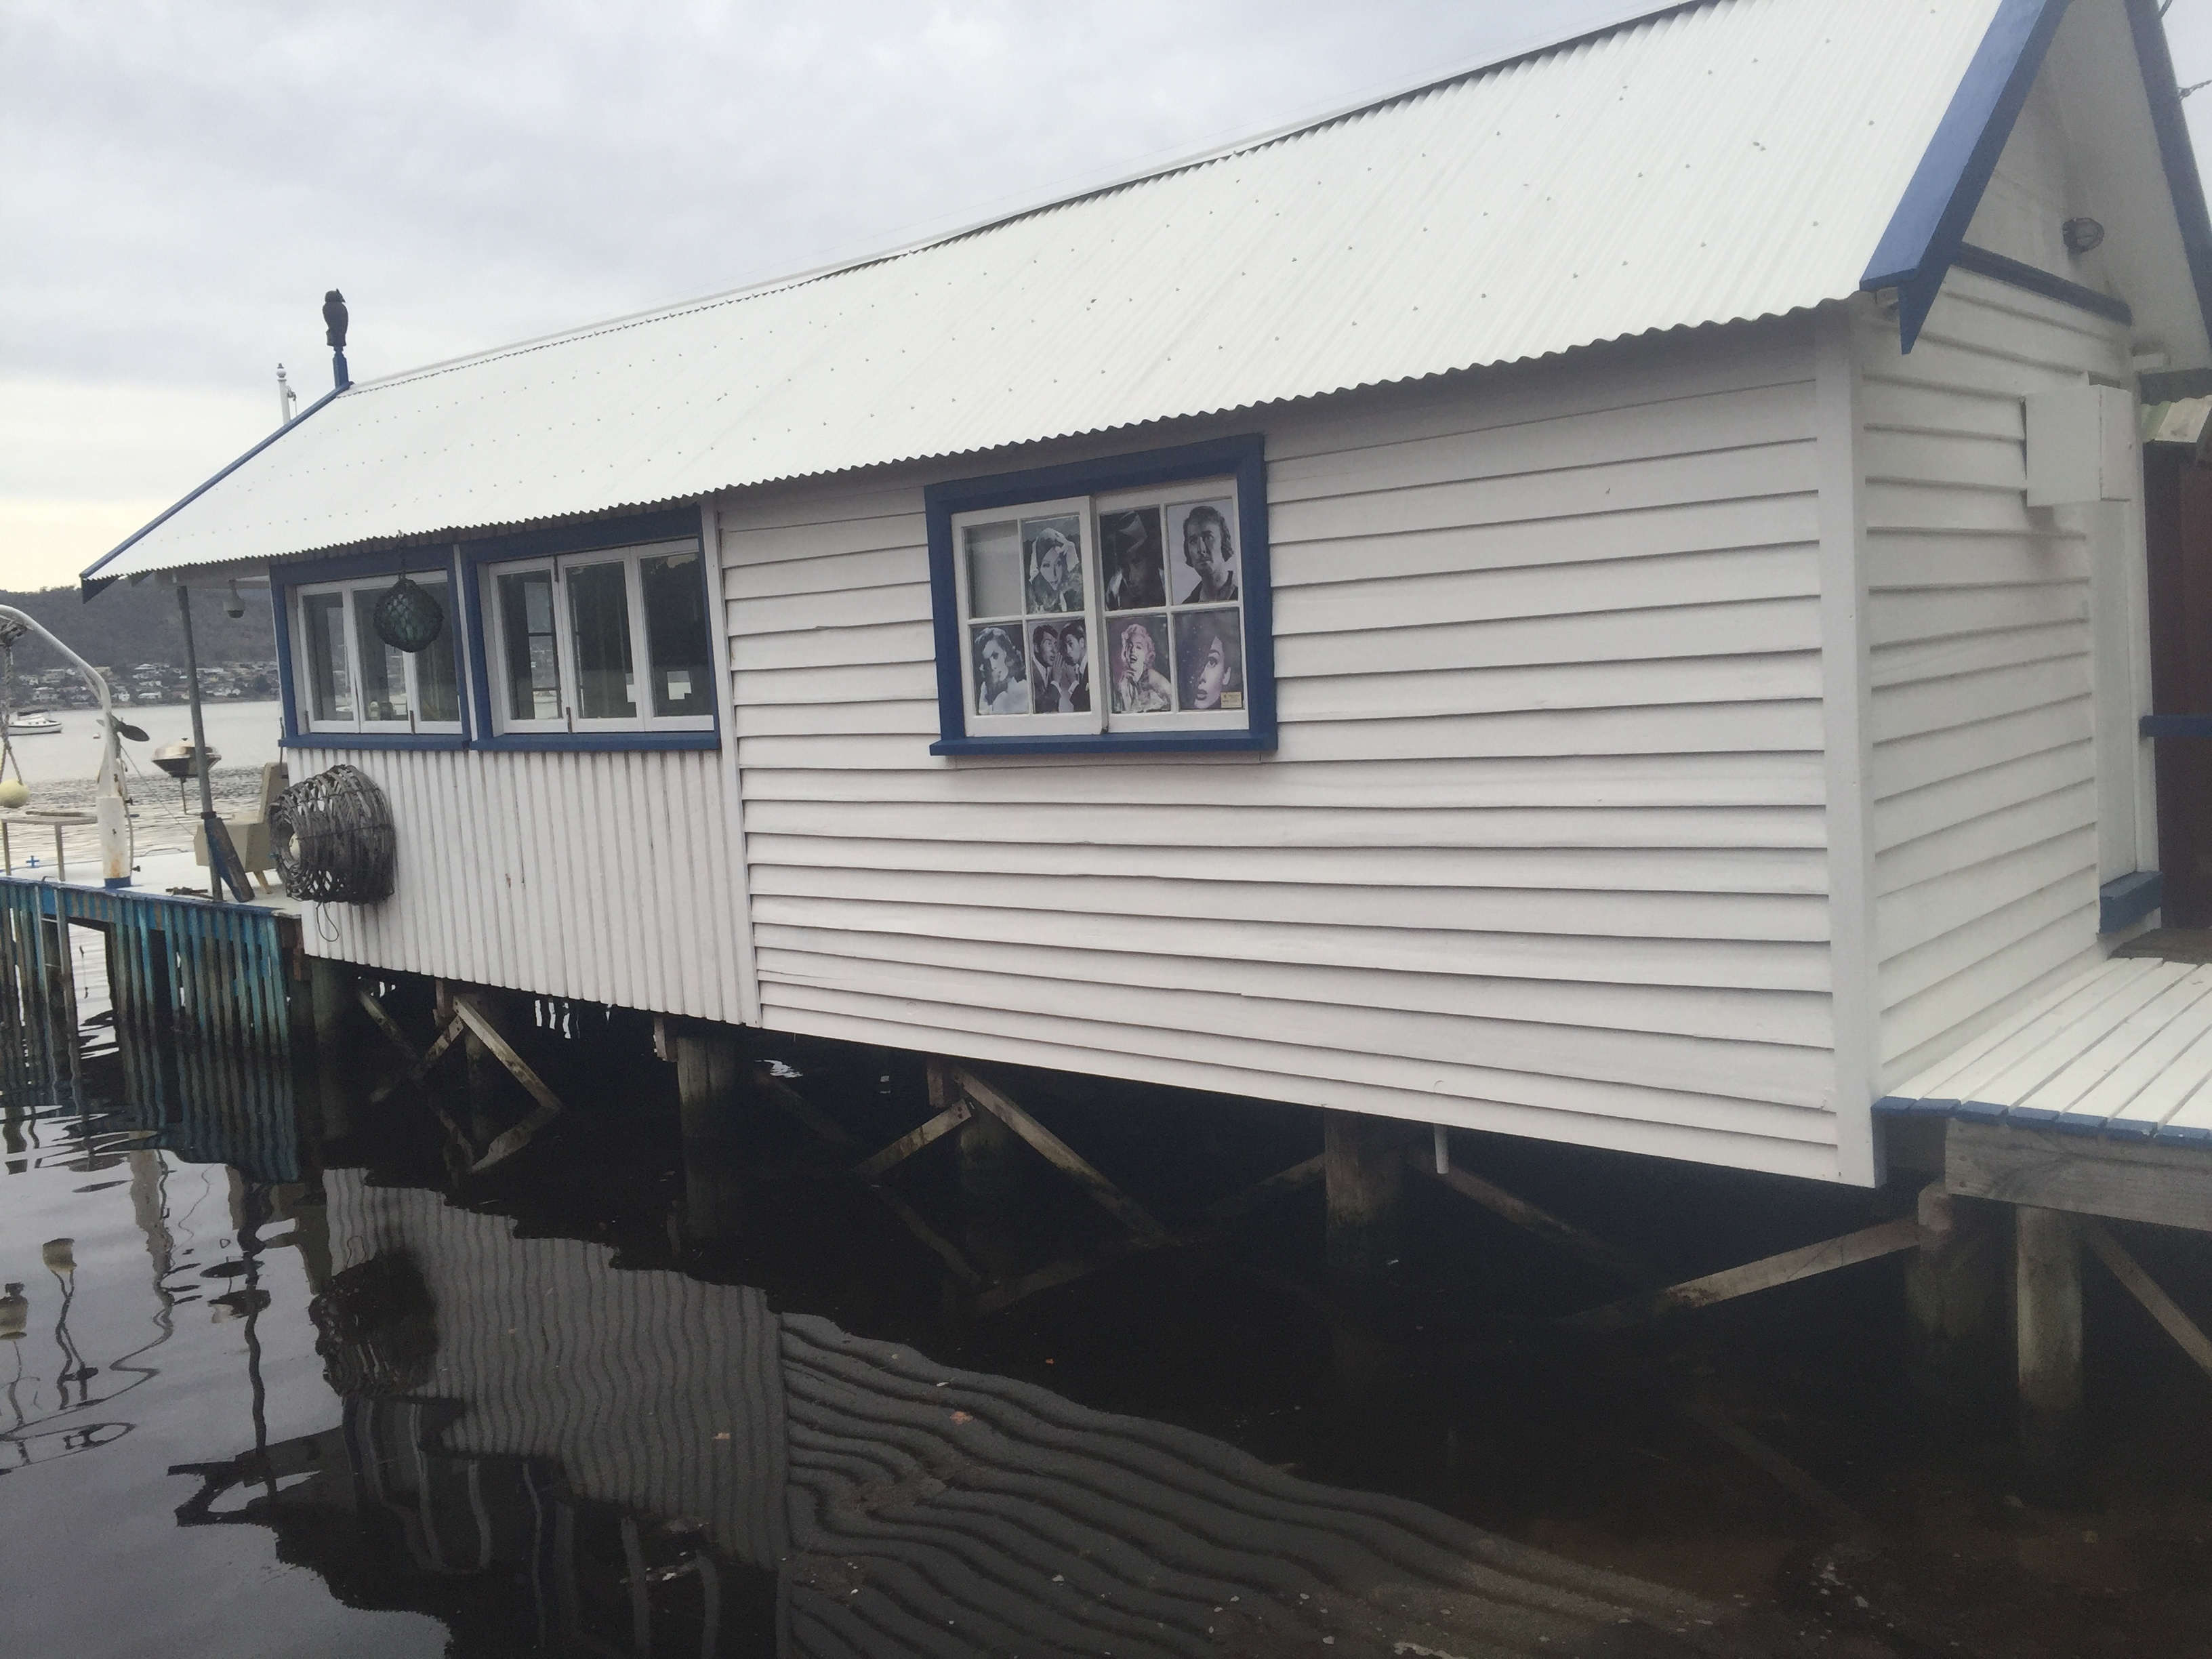 Not a marina in the traditional sense, but a private boatshed with jetty and living facilities.